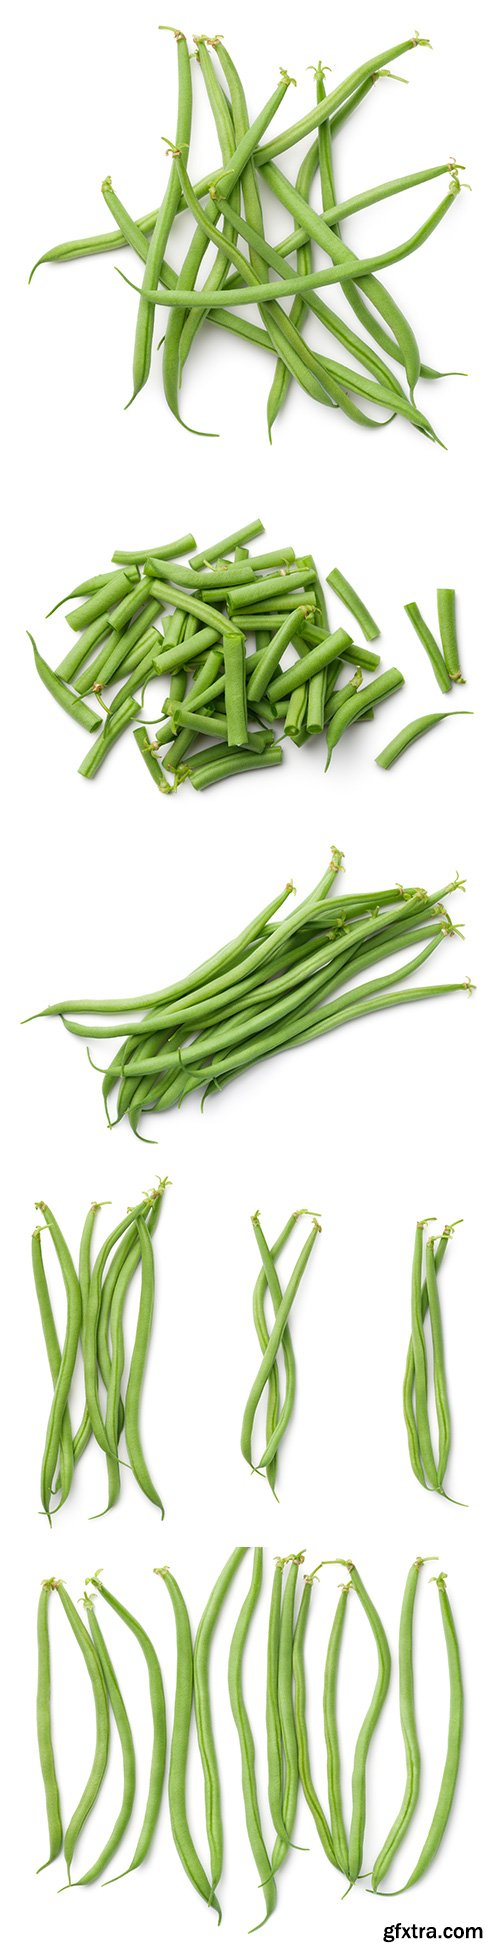 Green Beans Isolated - 5xJPGs